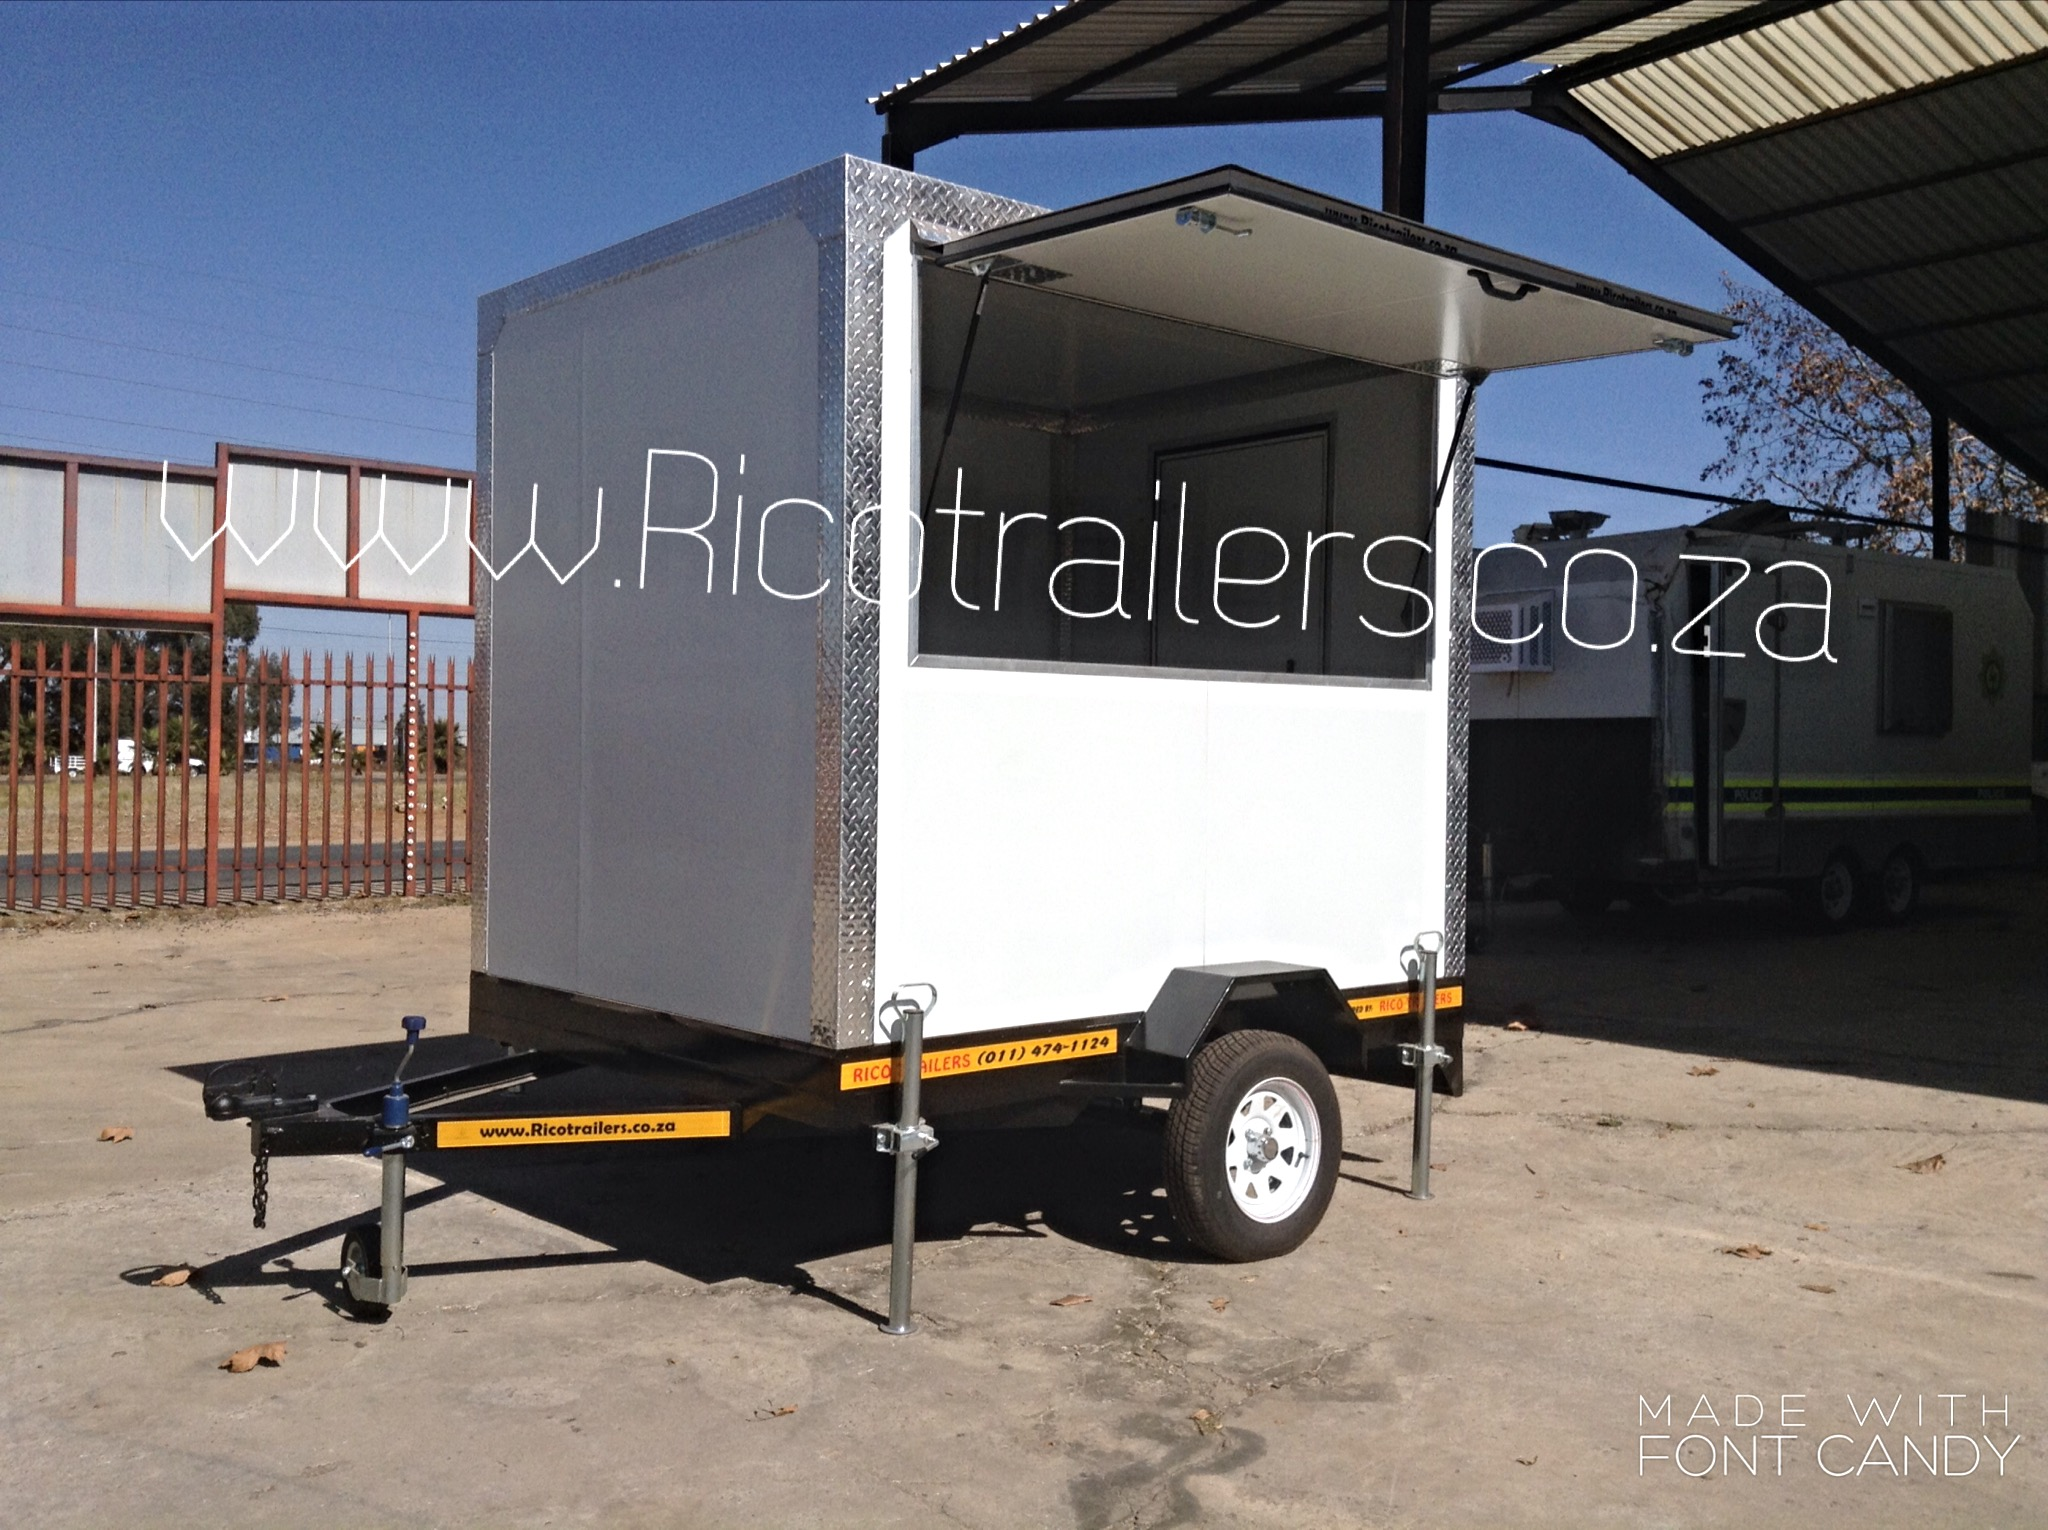 Mobile Kitchen For Sale Component Filled Mobile Kitchens Sale South Africa Clasf Kelsey Design